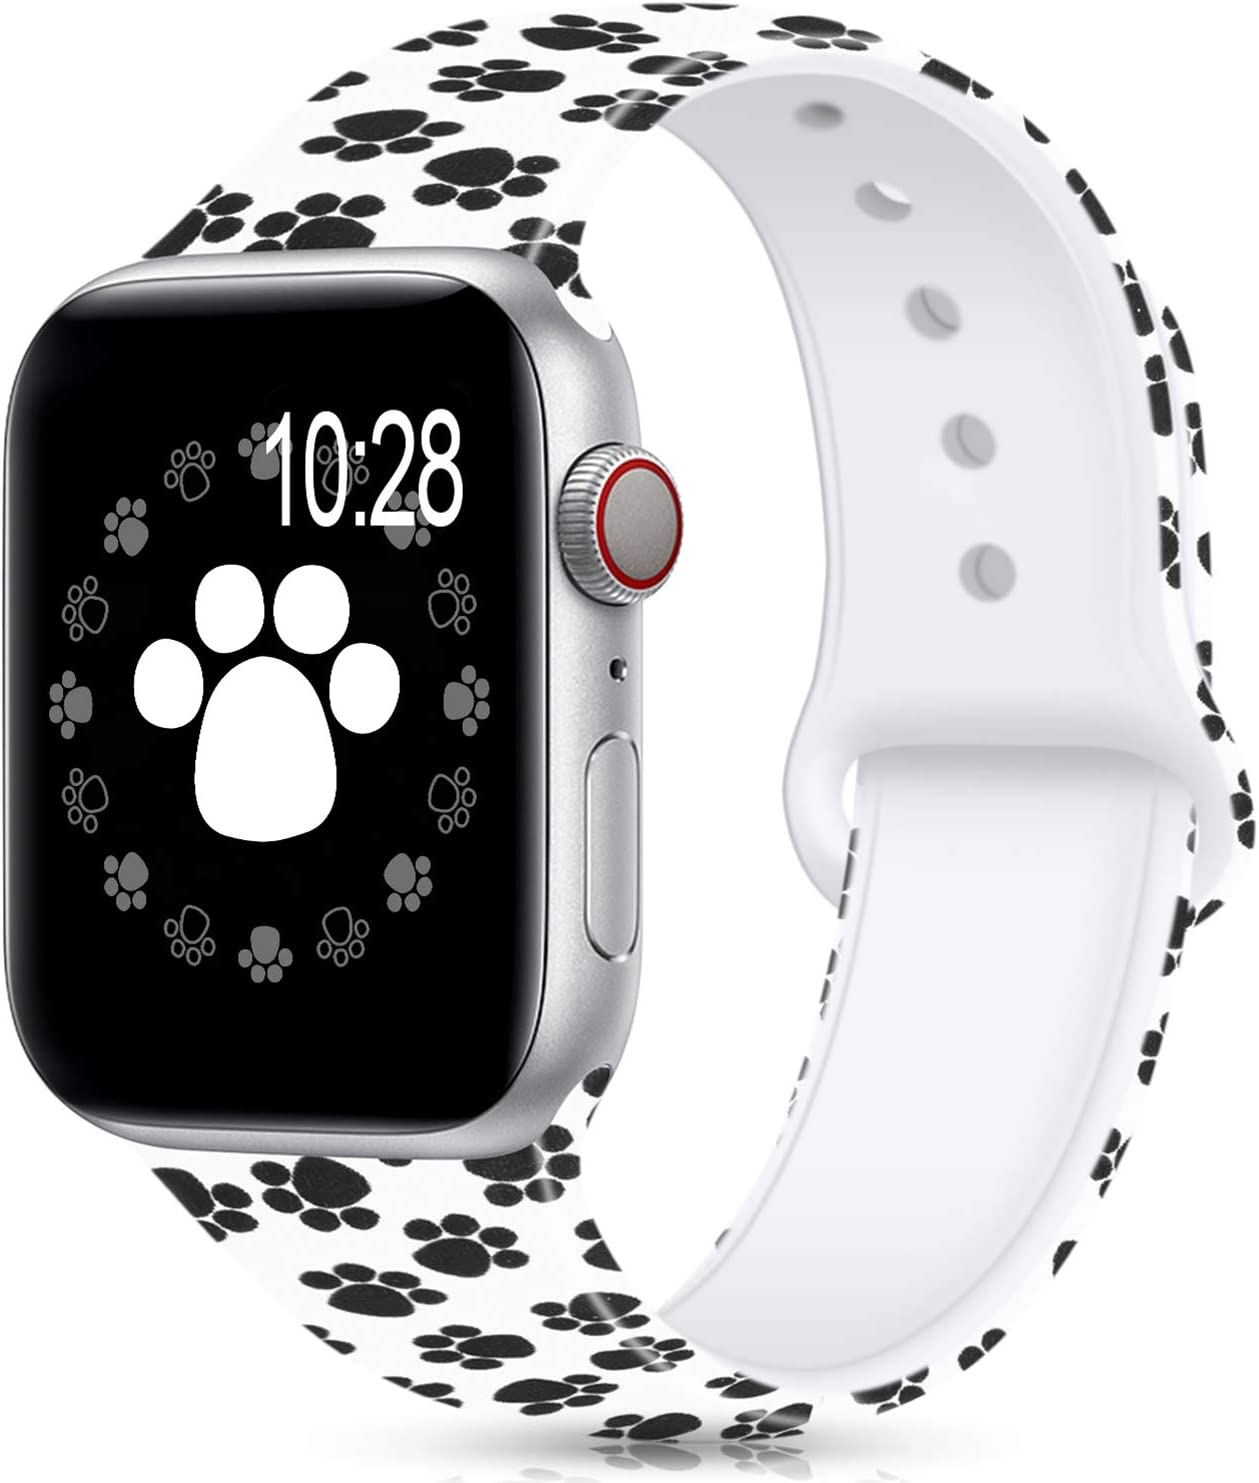 Compatible For Apple Watch Band 38mm 42mm 40mm 44mm,Silicone Fadeless Pattern Printed Replacement floral Bands for iWatch Series 4/3/2/1,Women/Men